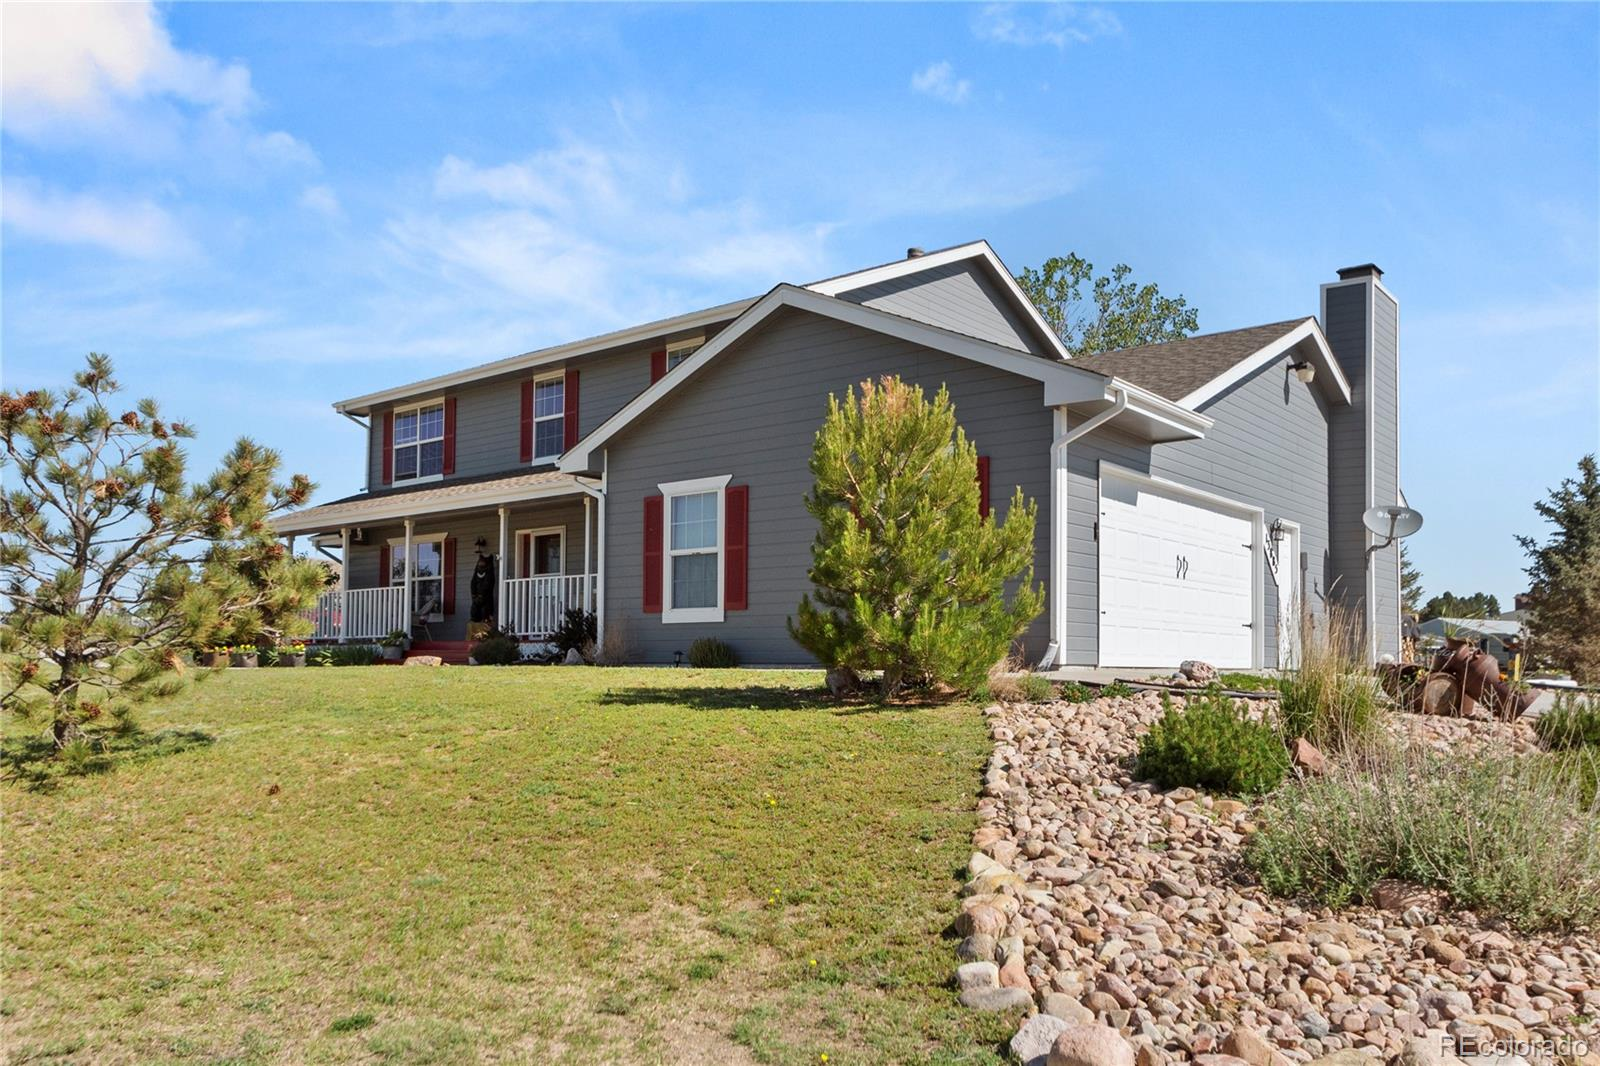 MLS# 7089085 - 4 - 13885 Halleluiah Trail, Elbert, CO 80106